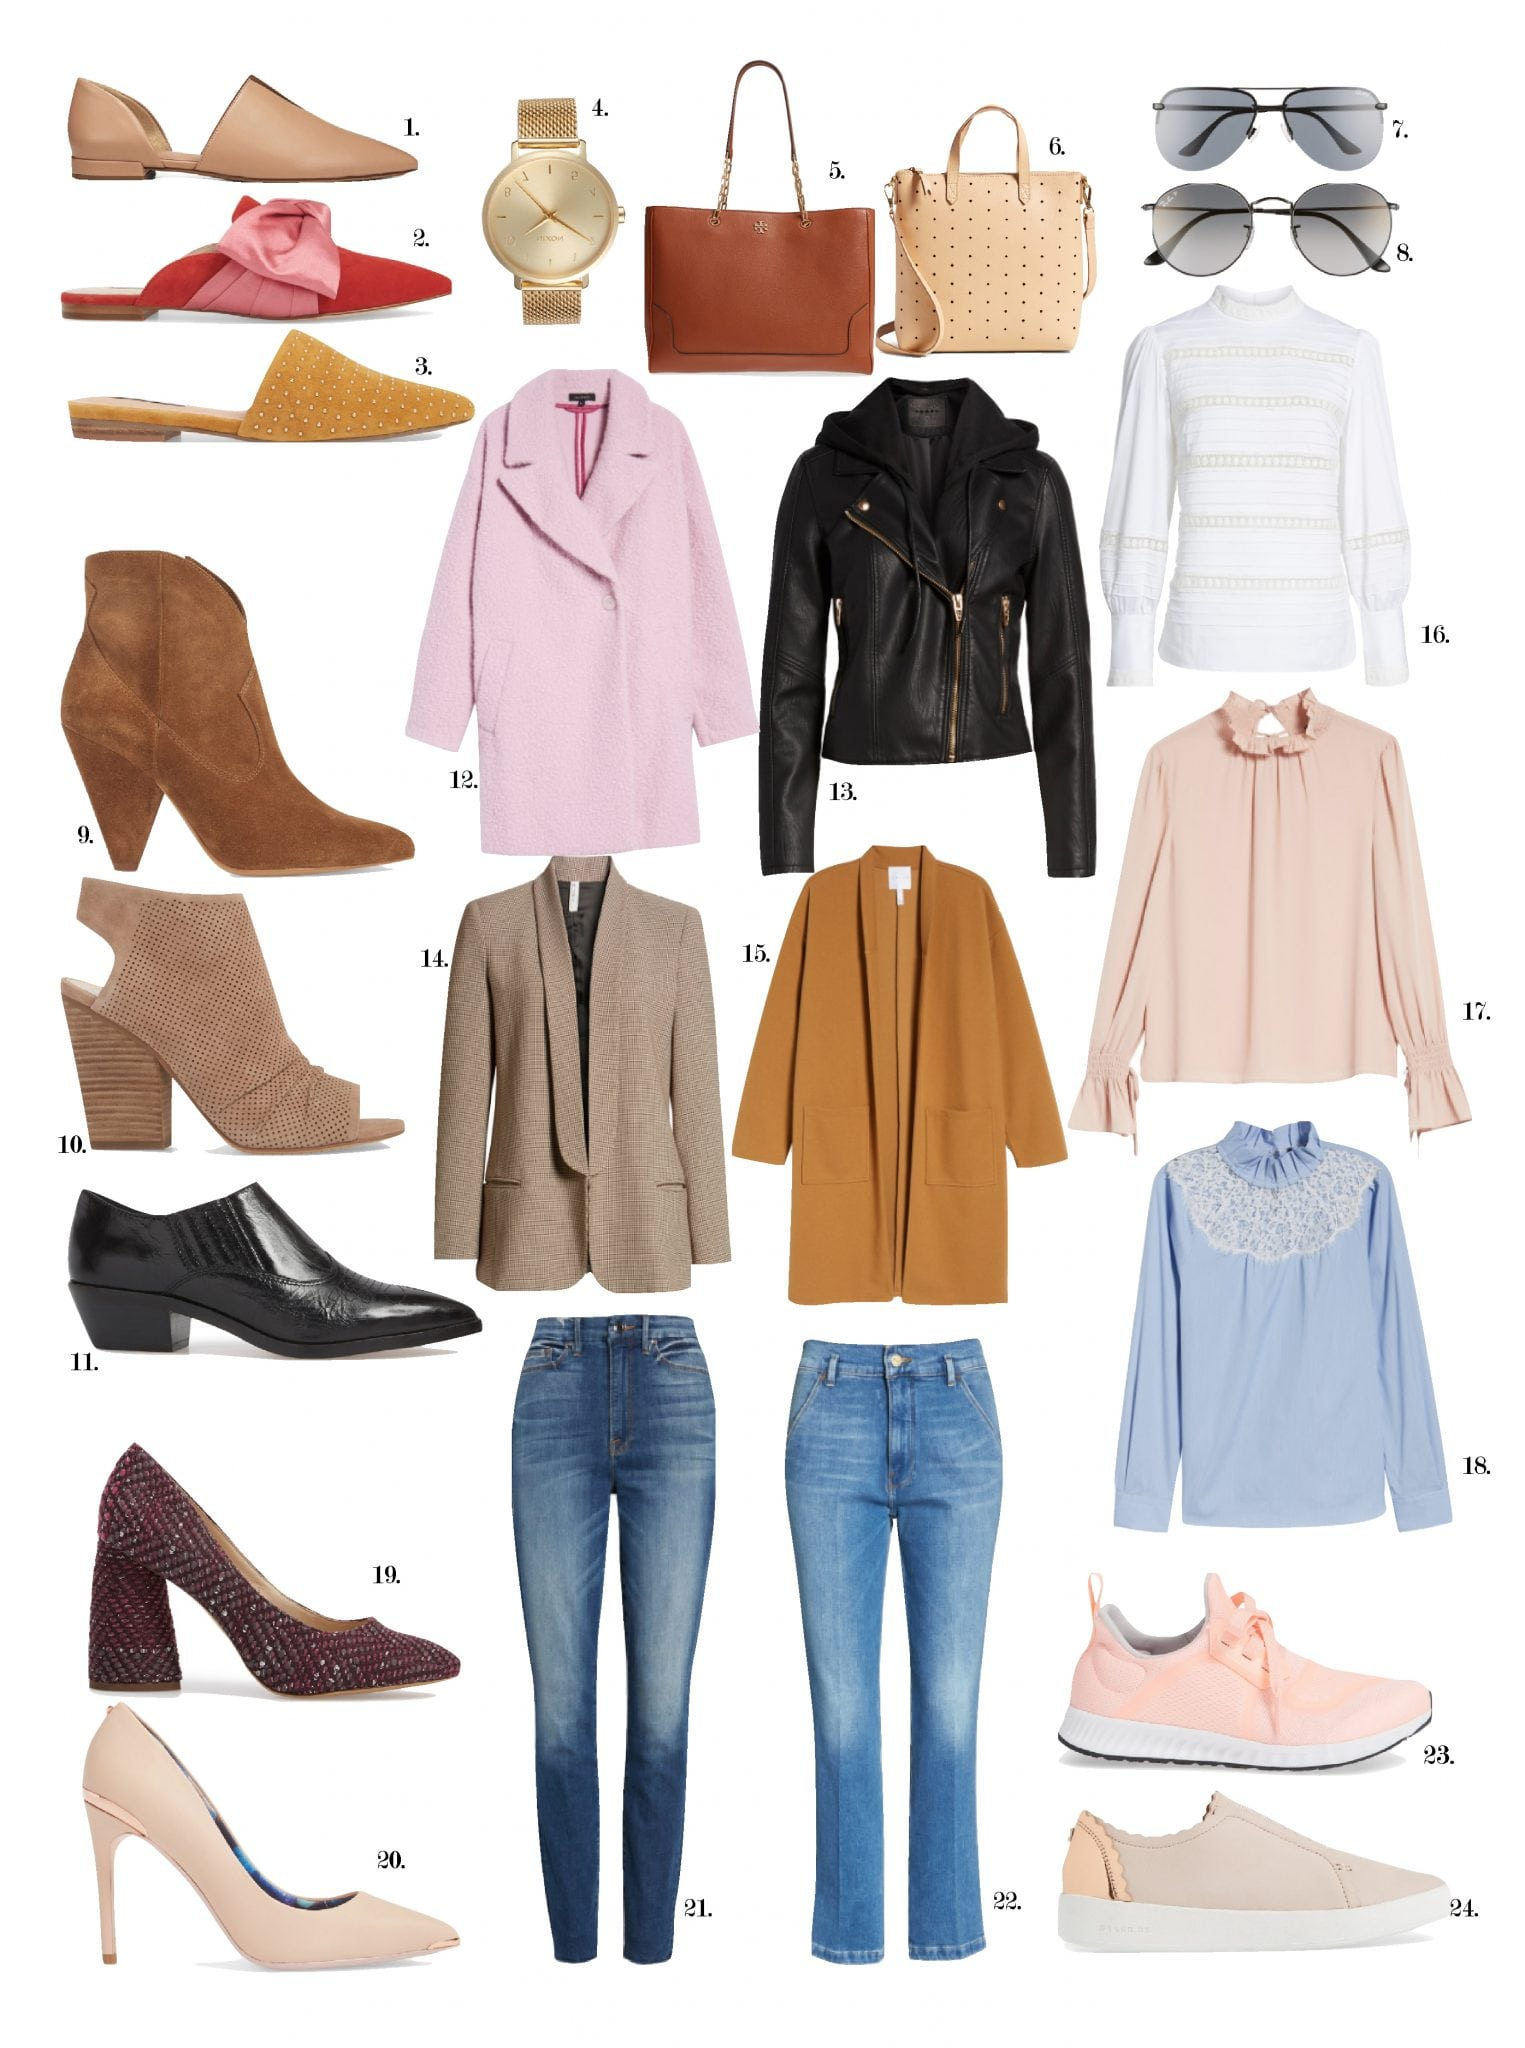 a4124847a60 BEST OF THE NORDSTROM ANNIVERSARY SALE 2018 + GIVEAWAY